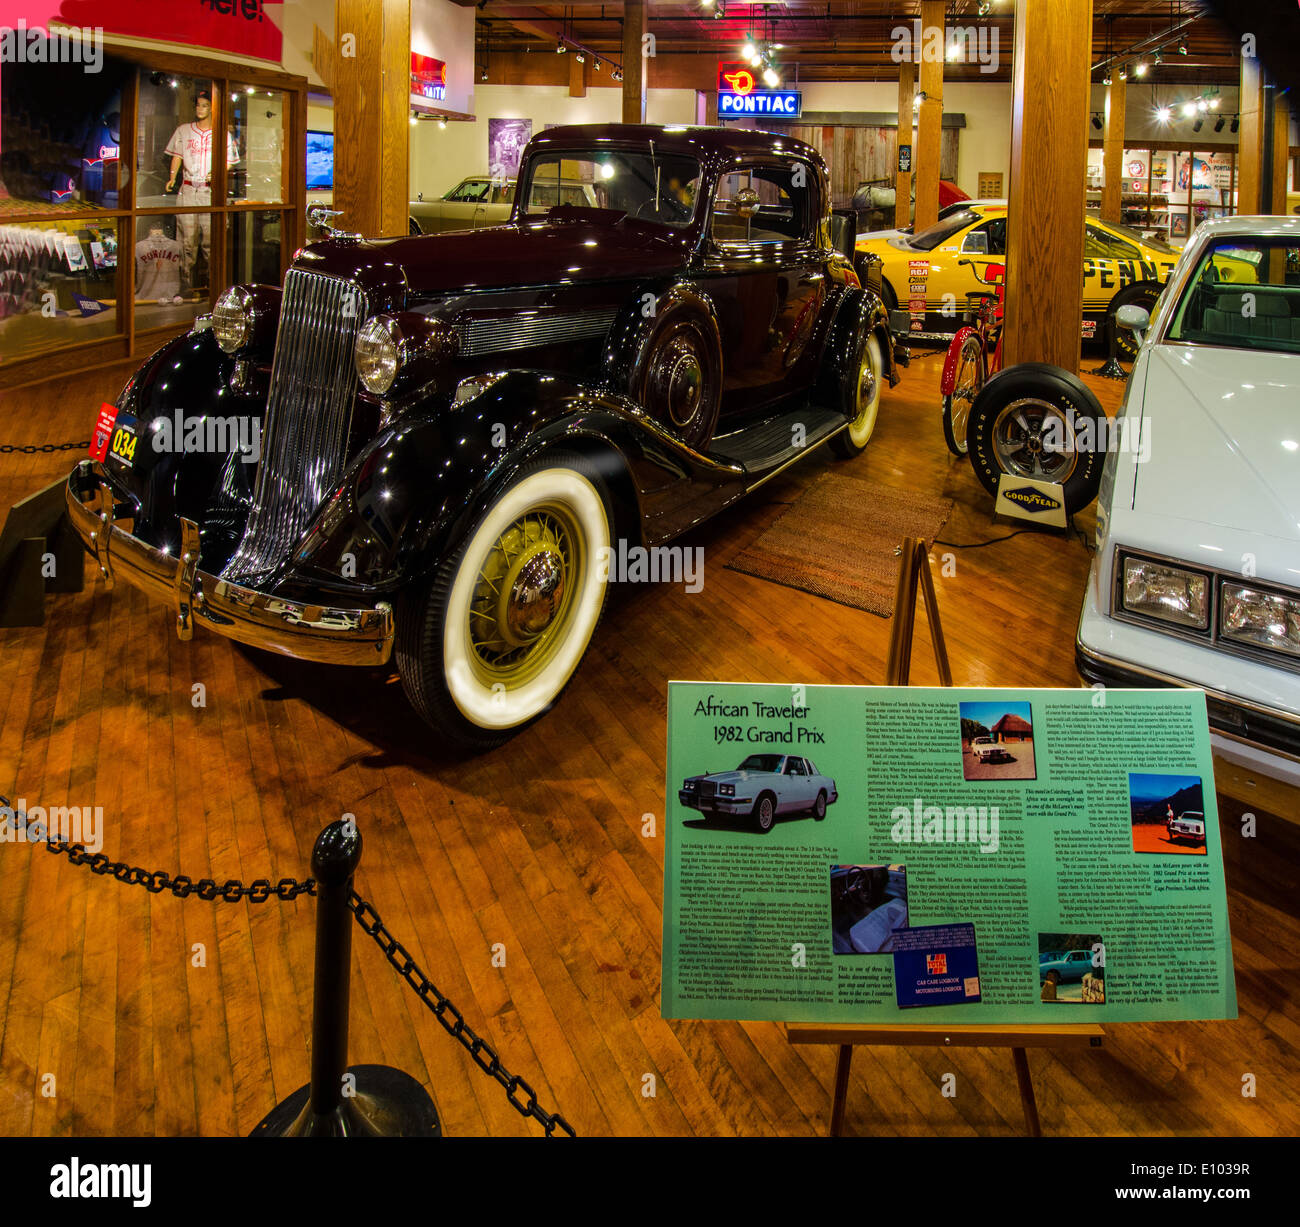 The Pontiac-Oakland Museum in Pontiac, Illinois, a town along Route 66 - Stock Image